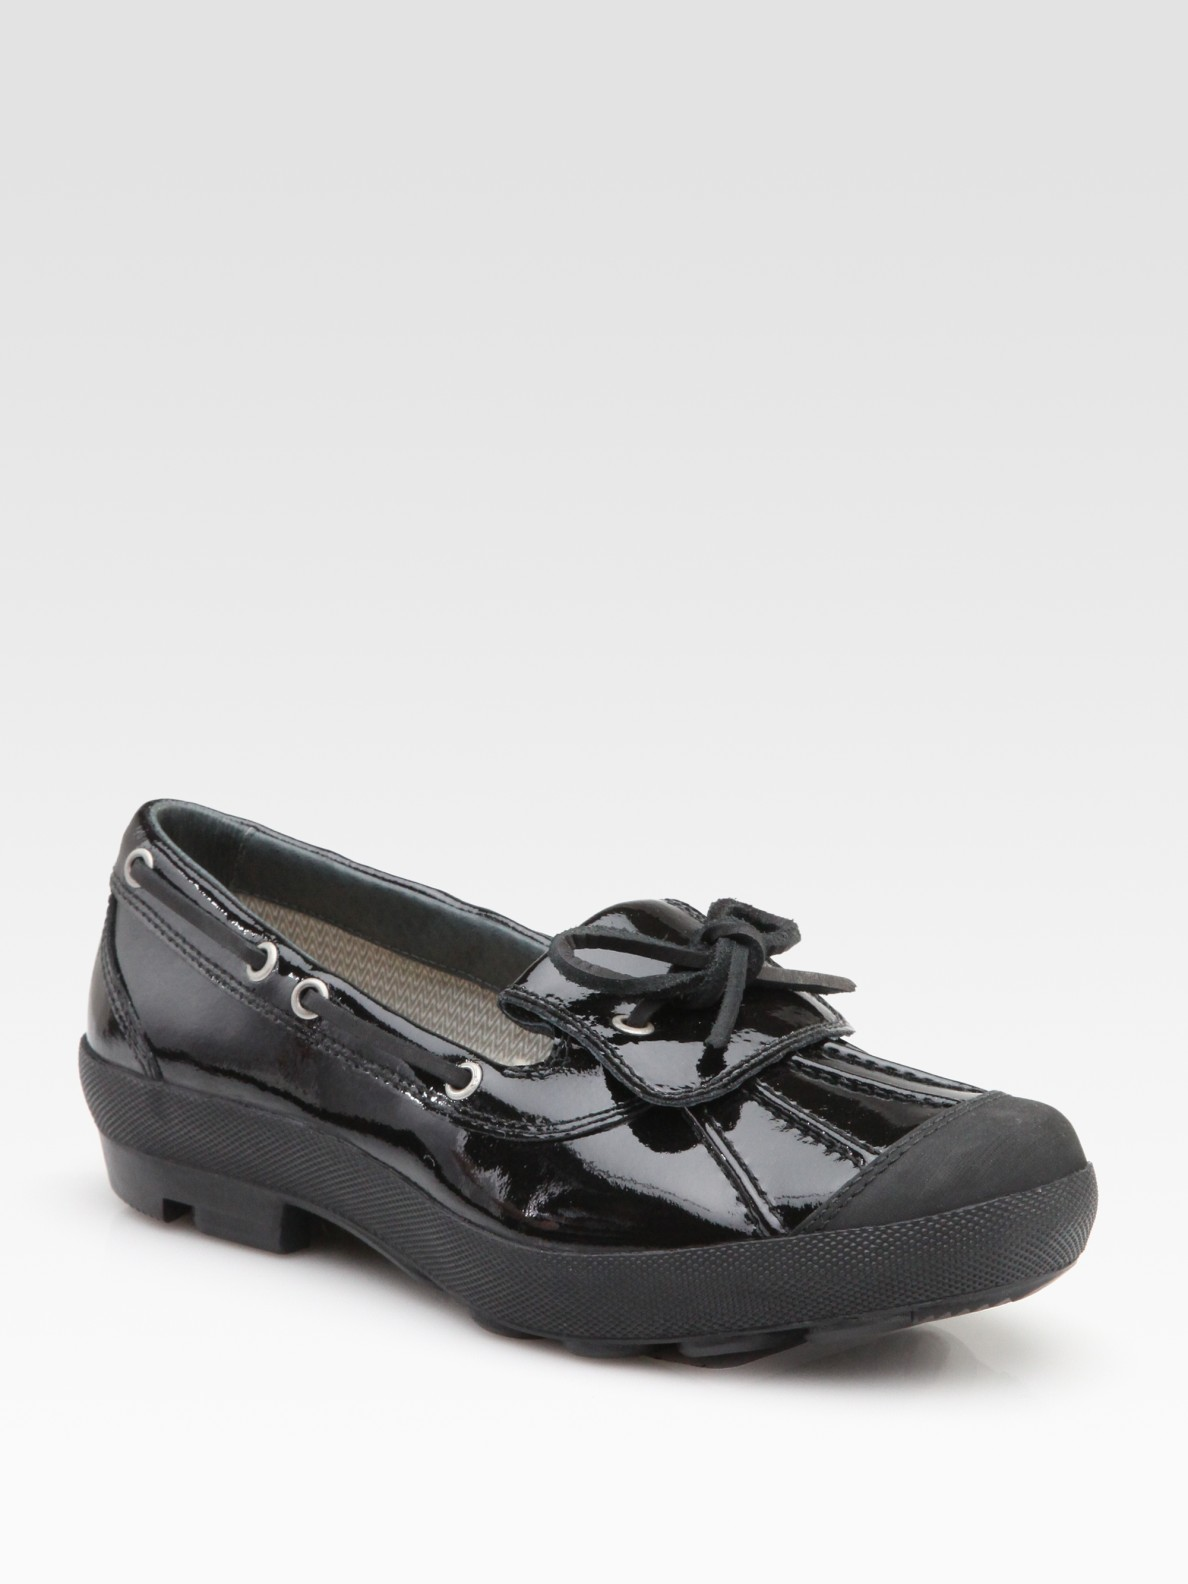 Ugg Shoes Womens Loafers